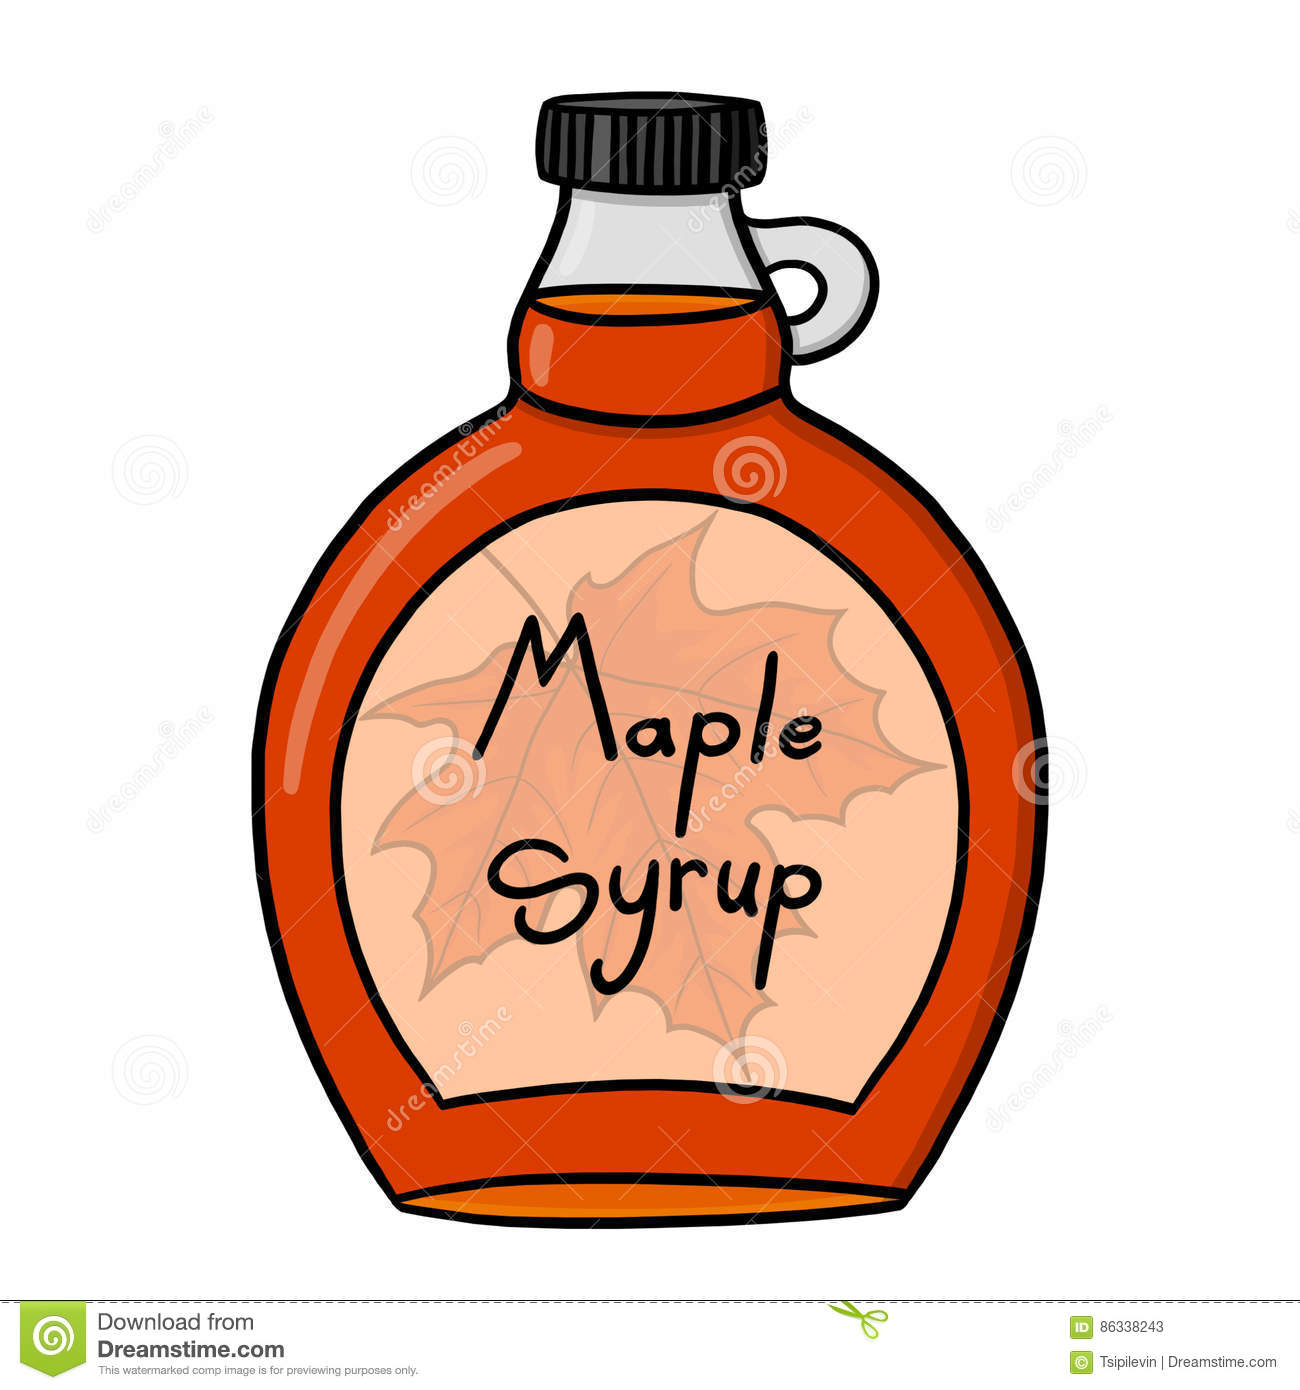 Maple Syrup Illustration Stock Illustration Illustration Of Container